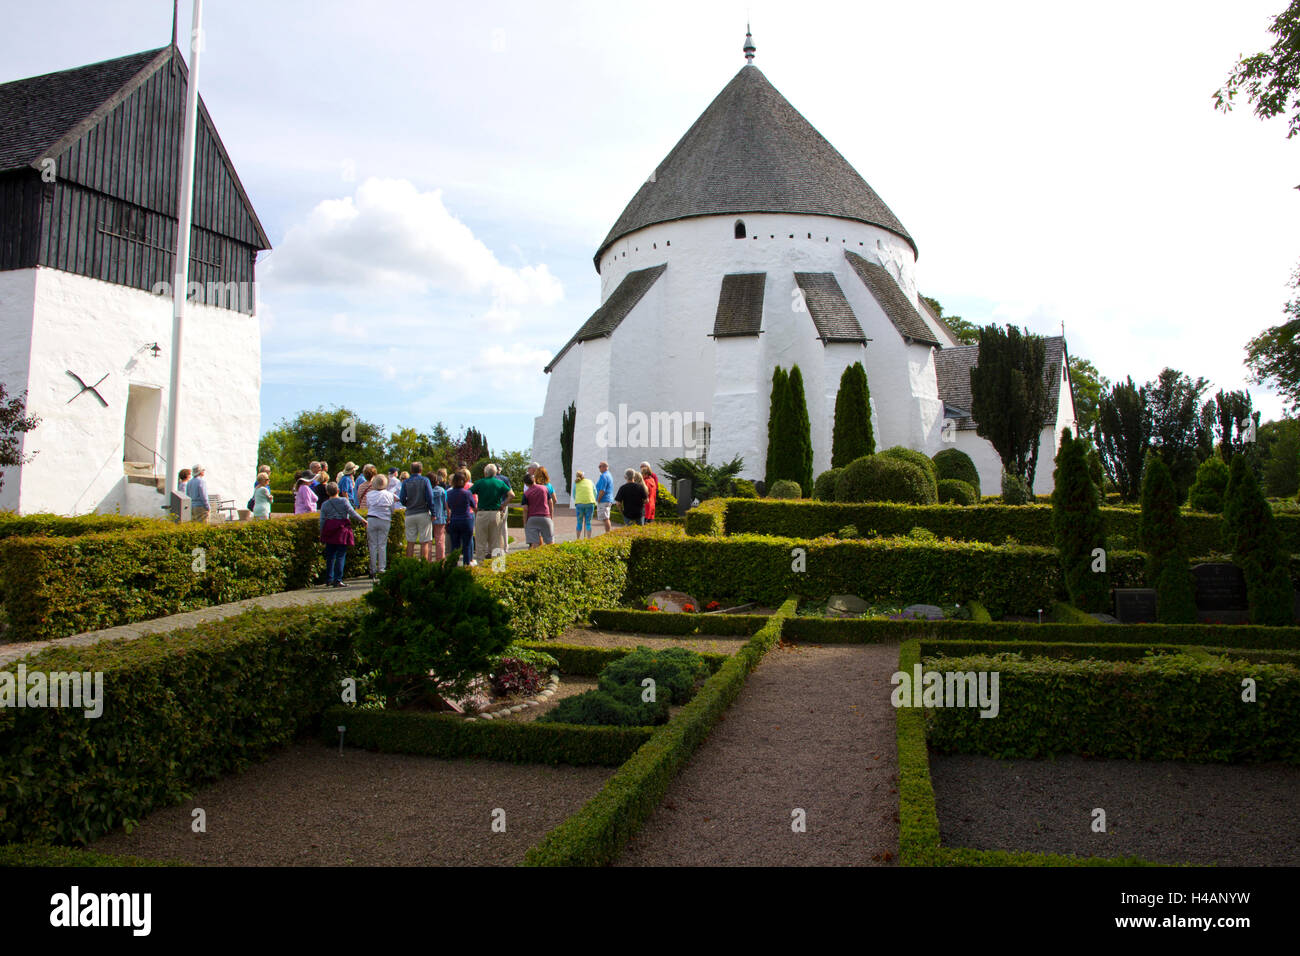 Osterlars Round Church dates back to 1150 and was used both as a place of worship and for protection against enemies. - Stock Image